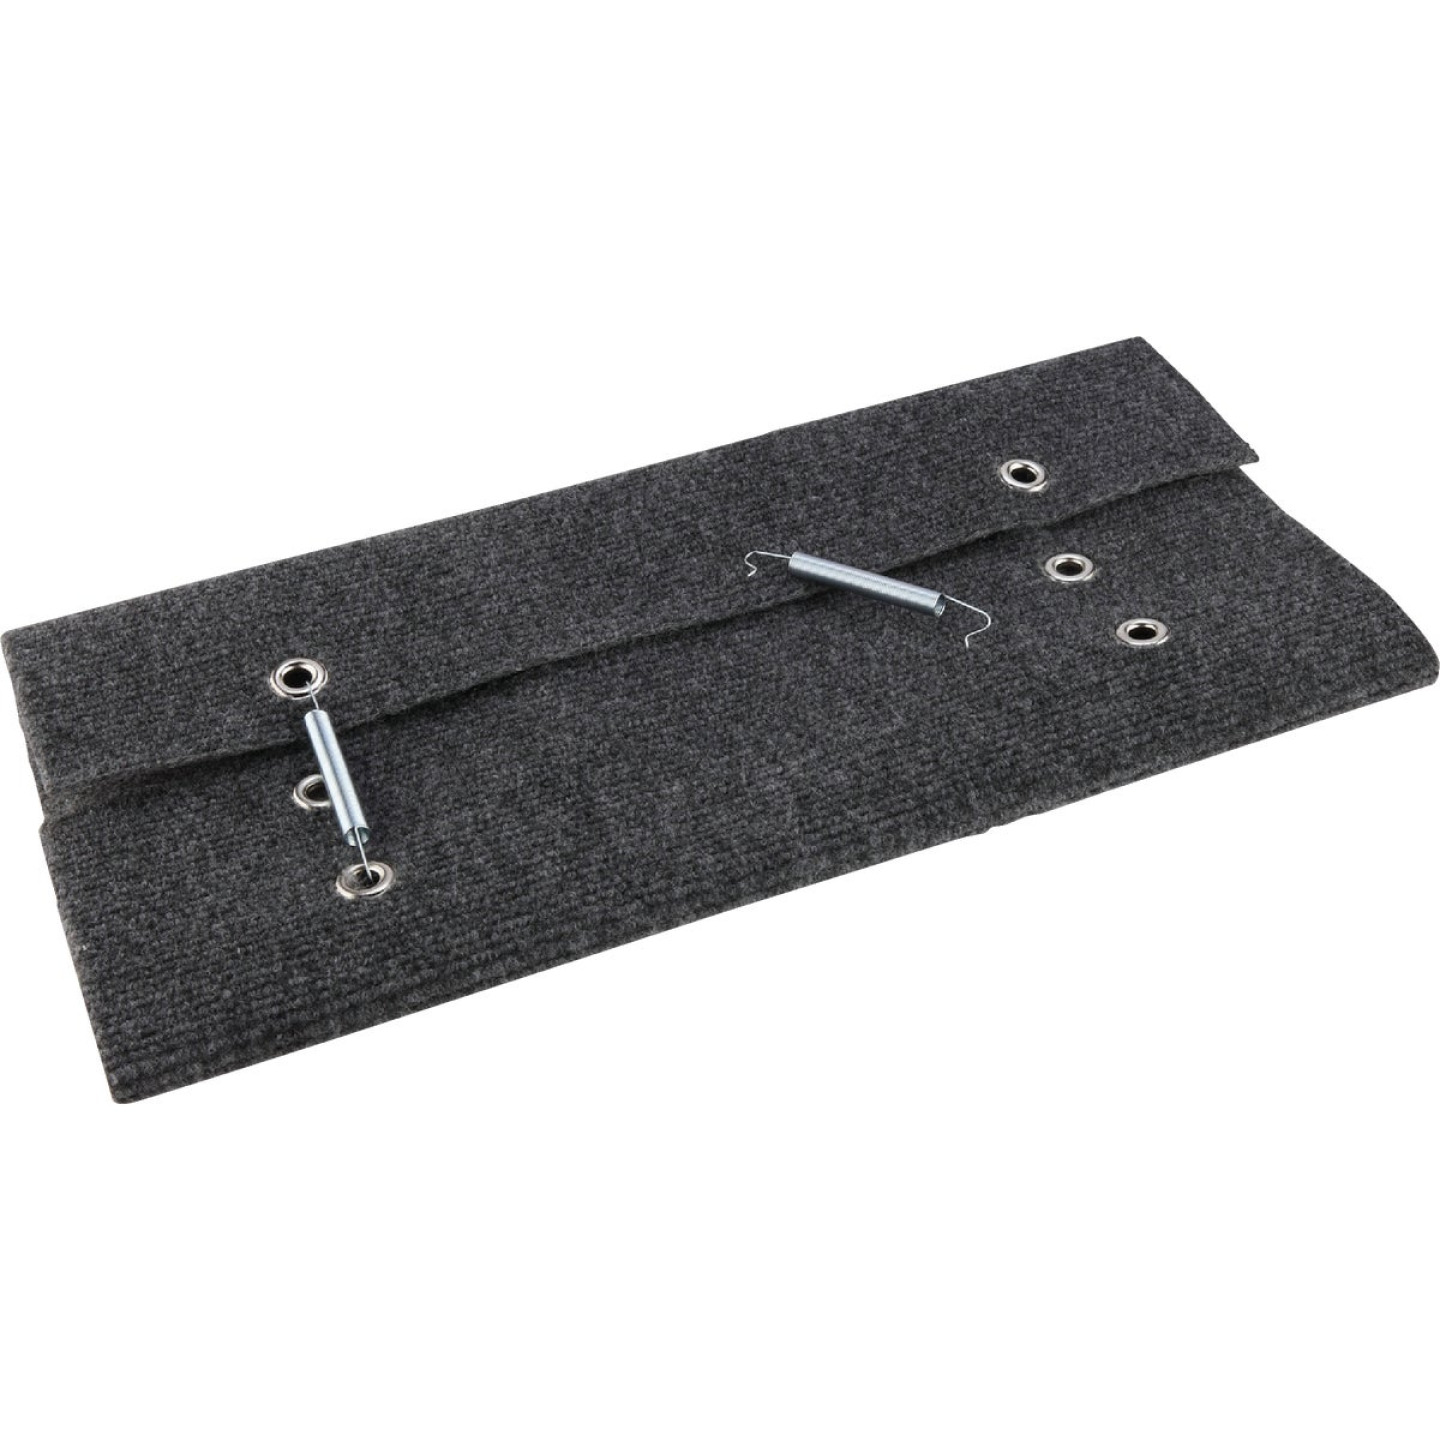 Camco 18 In. RV Rug Image 2